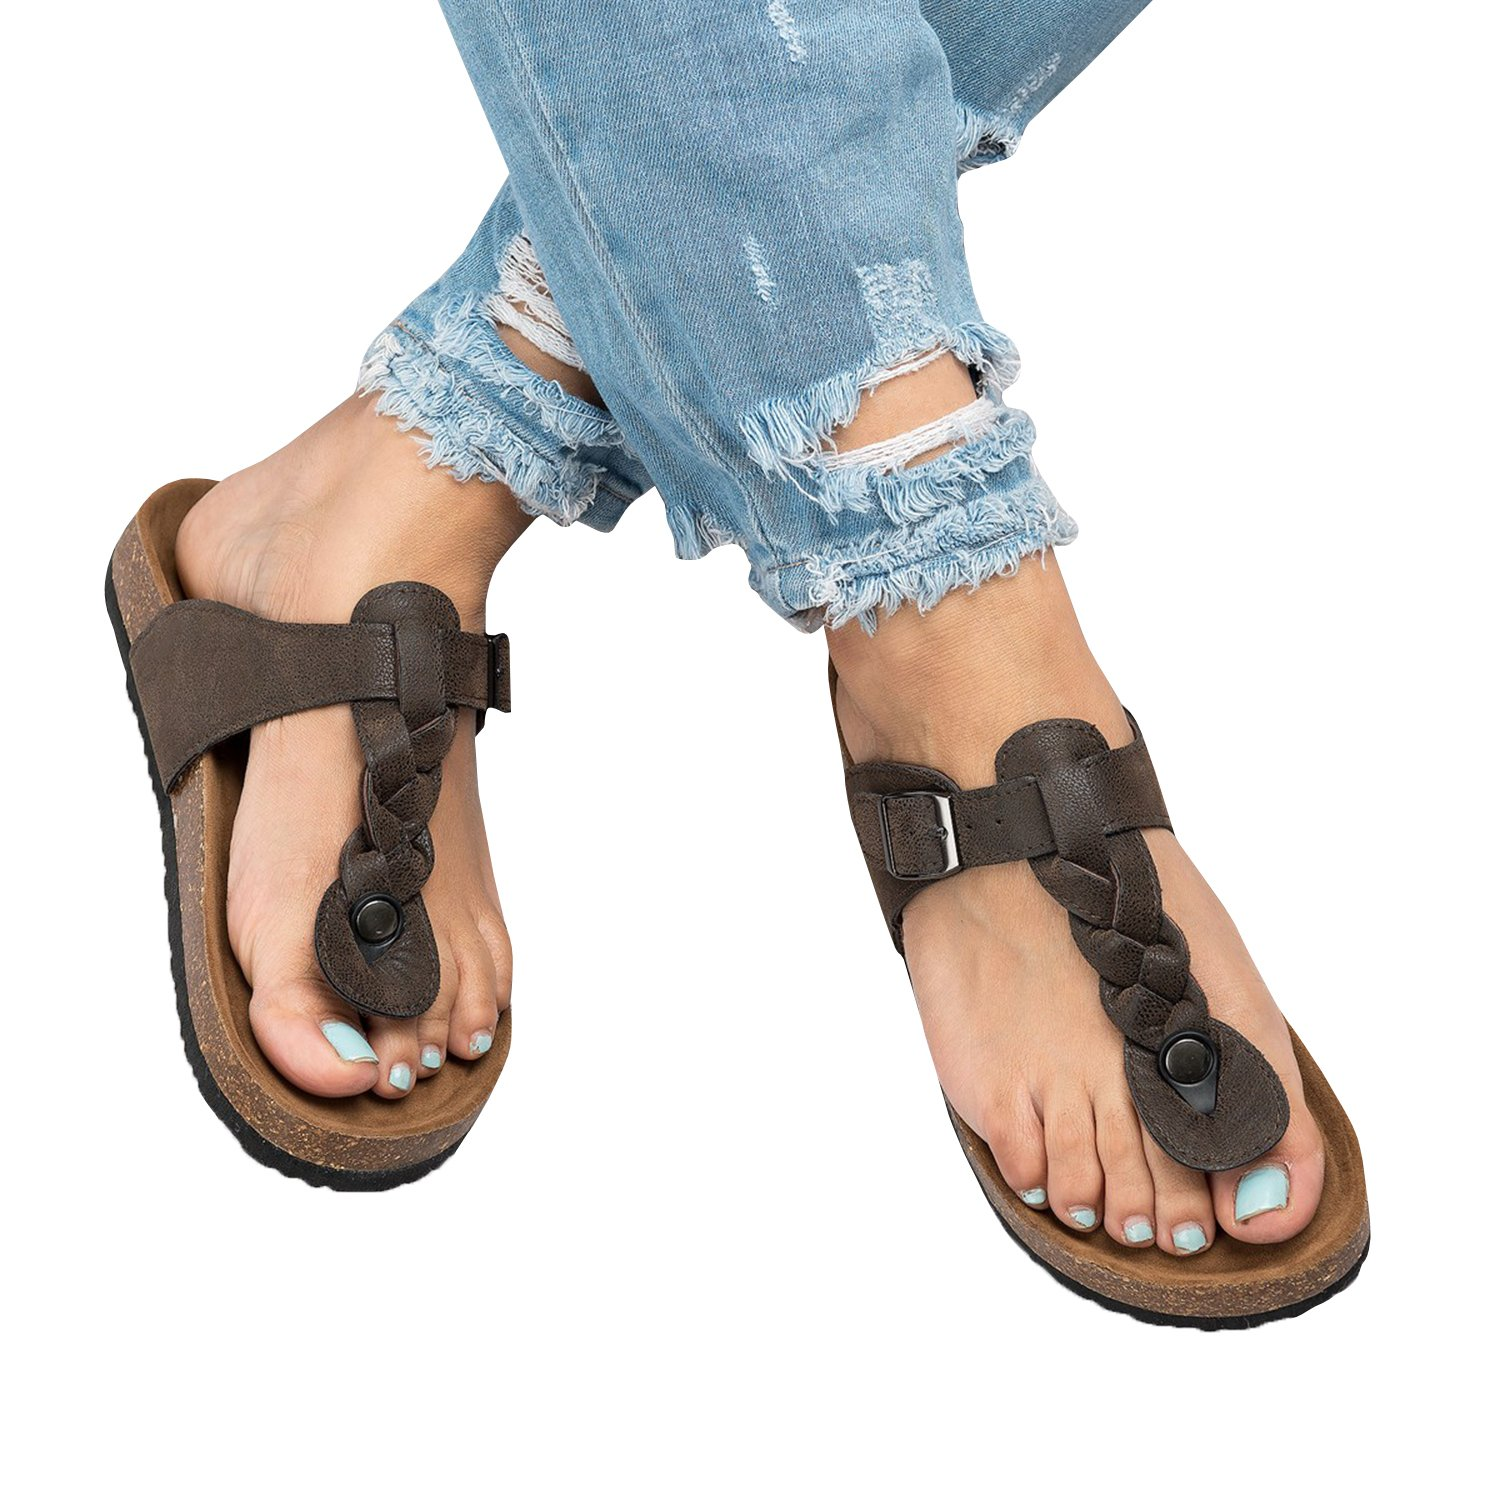 Womens Buckle Flat Sandals Gladiator Summer Casual Beach Shoes with Ankle Straps